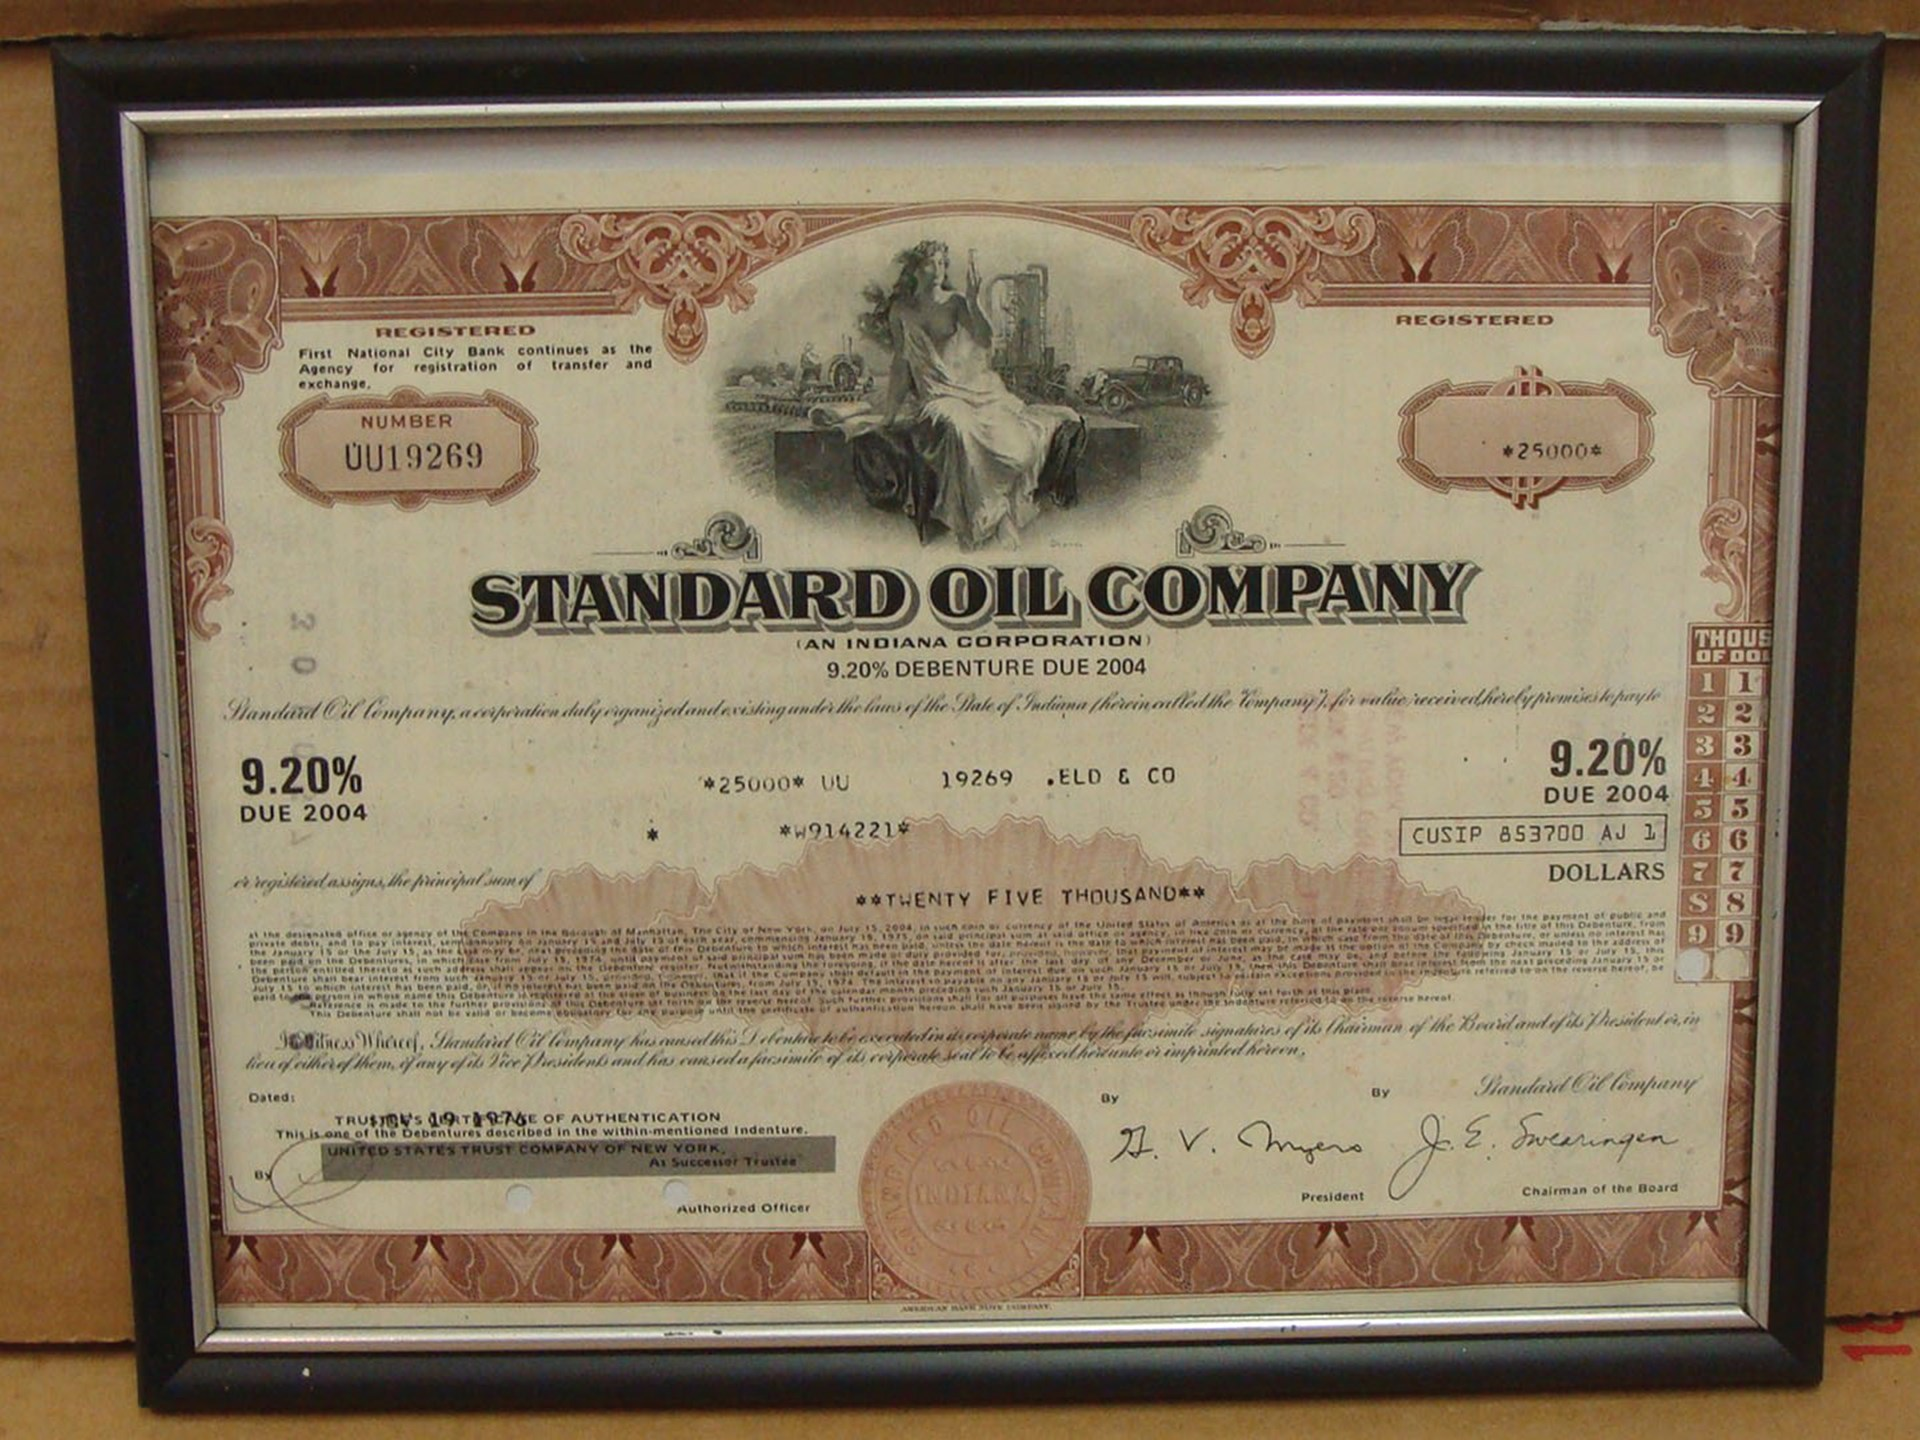 RM Sotheby's - Original 1976 Standard Oil Company Stock Bond